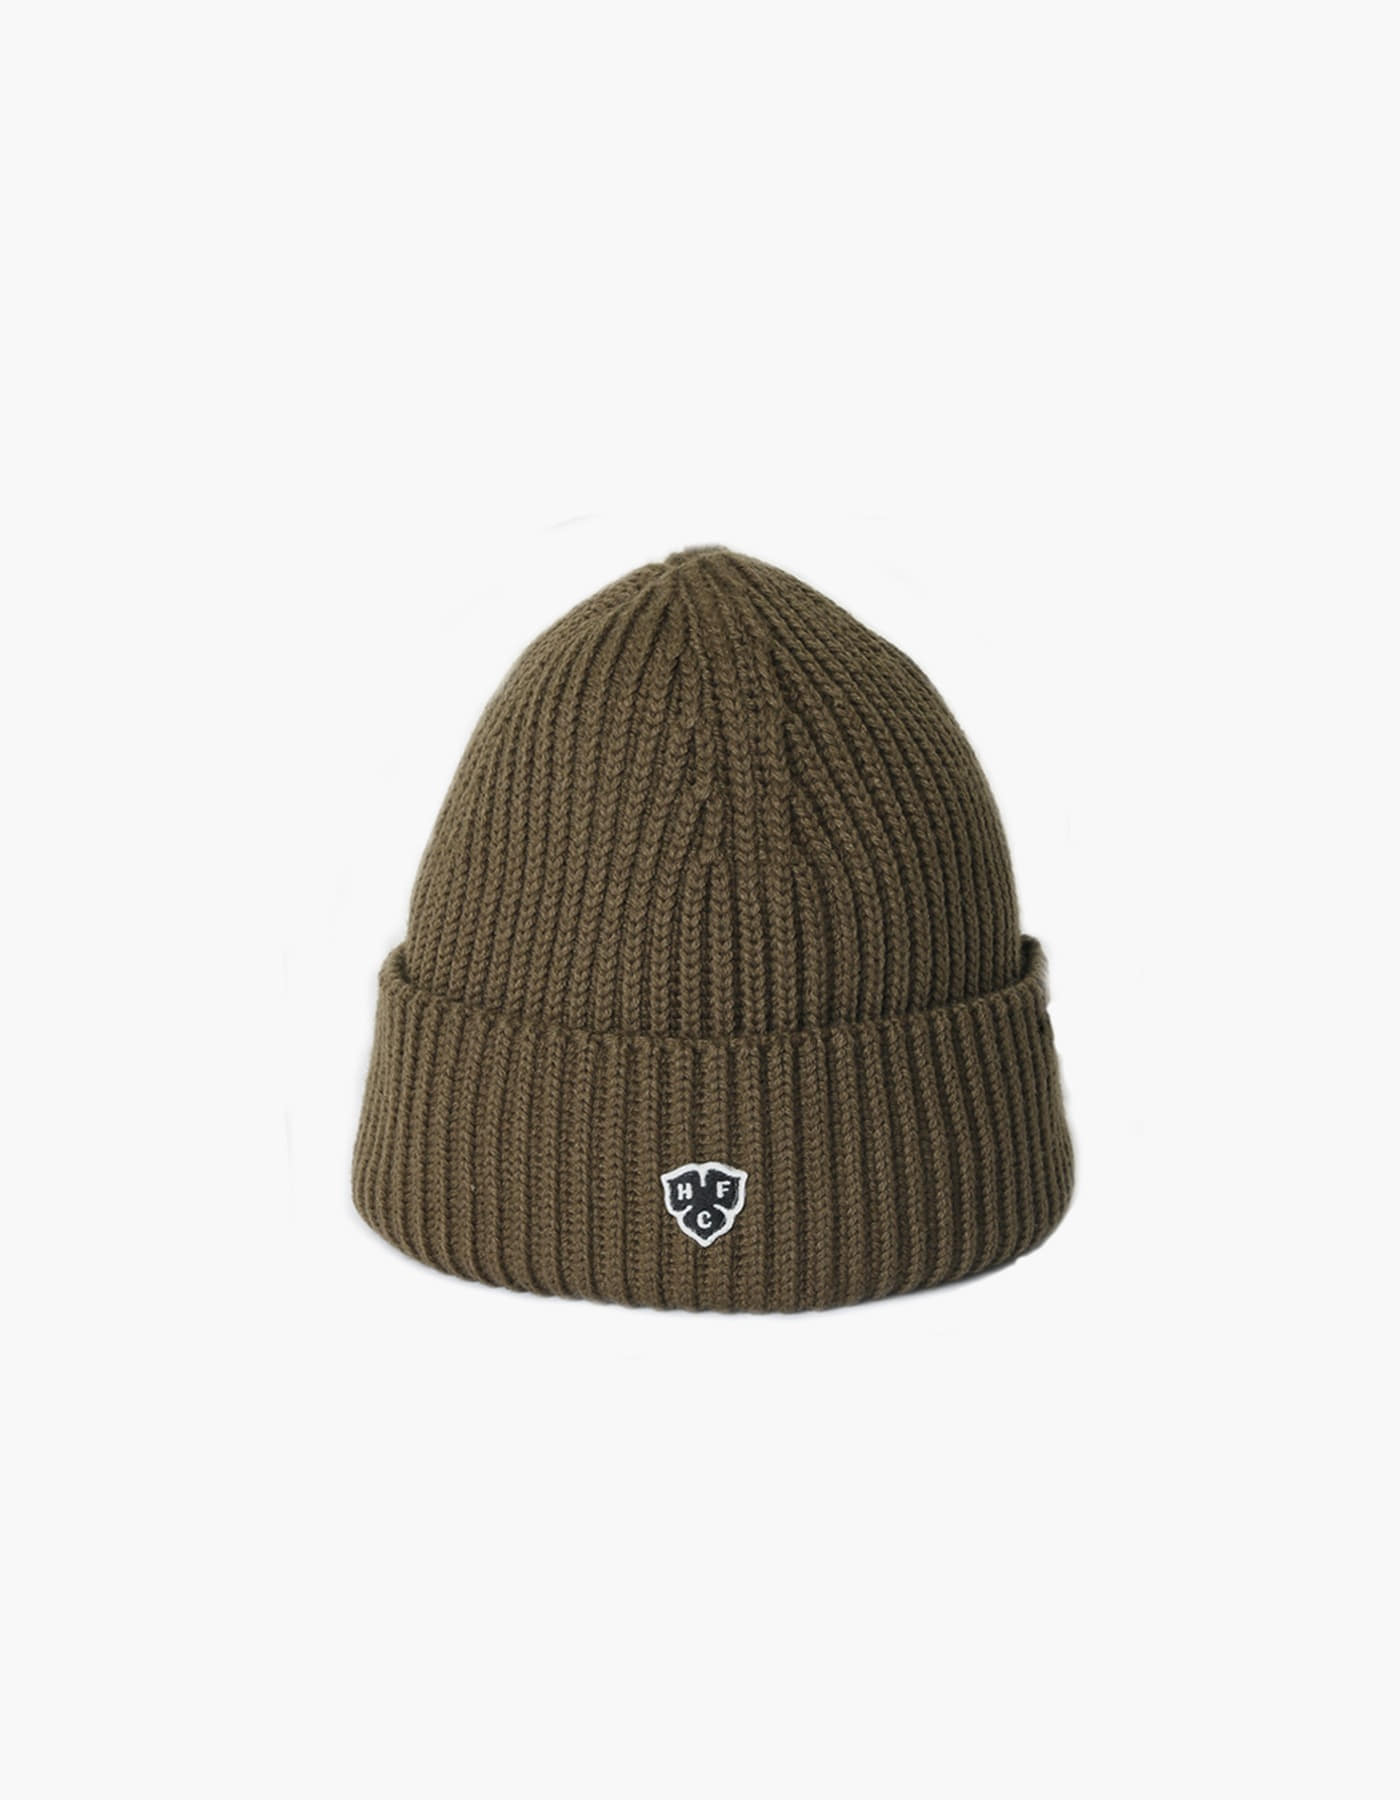 HFC CLOVER WOOL WATCH CAP / KHAKI